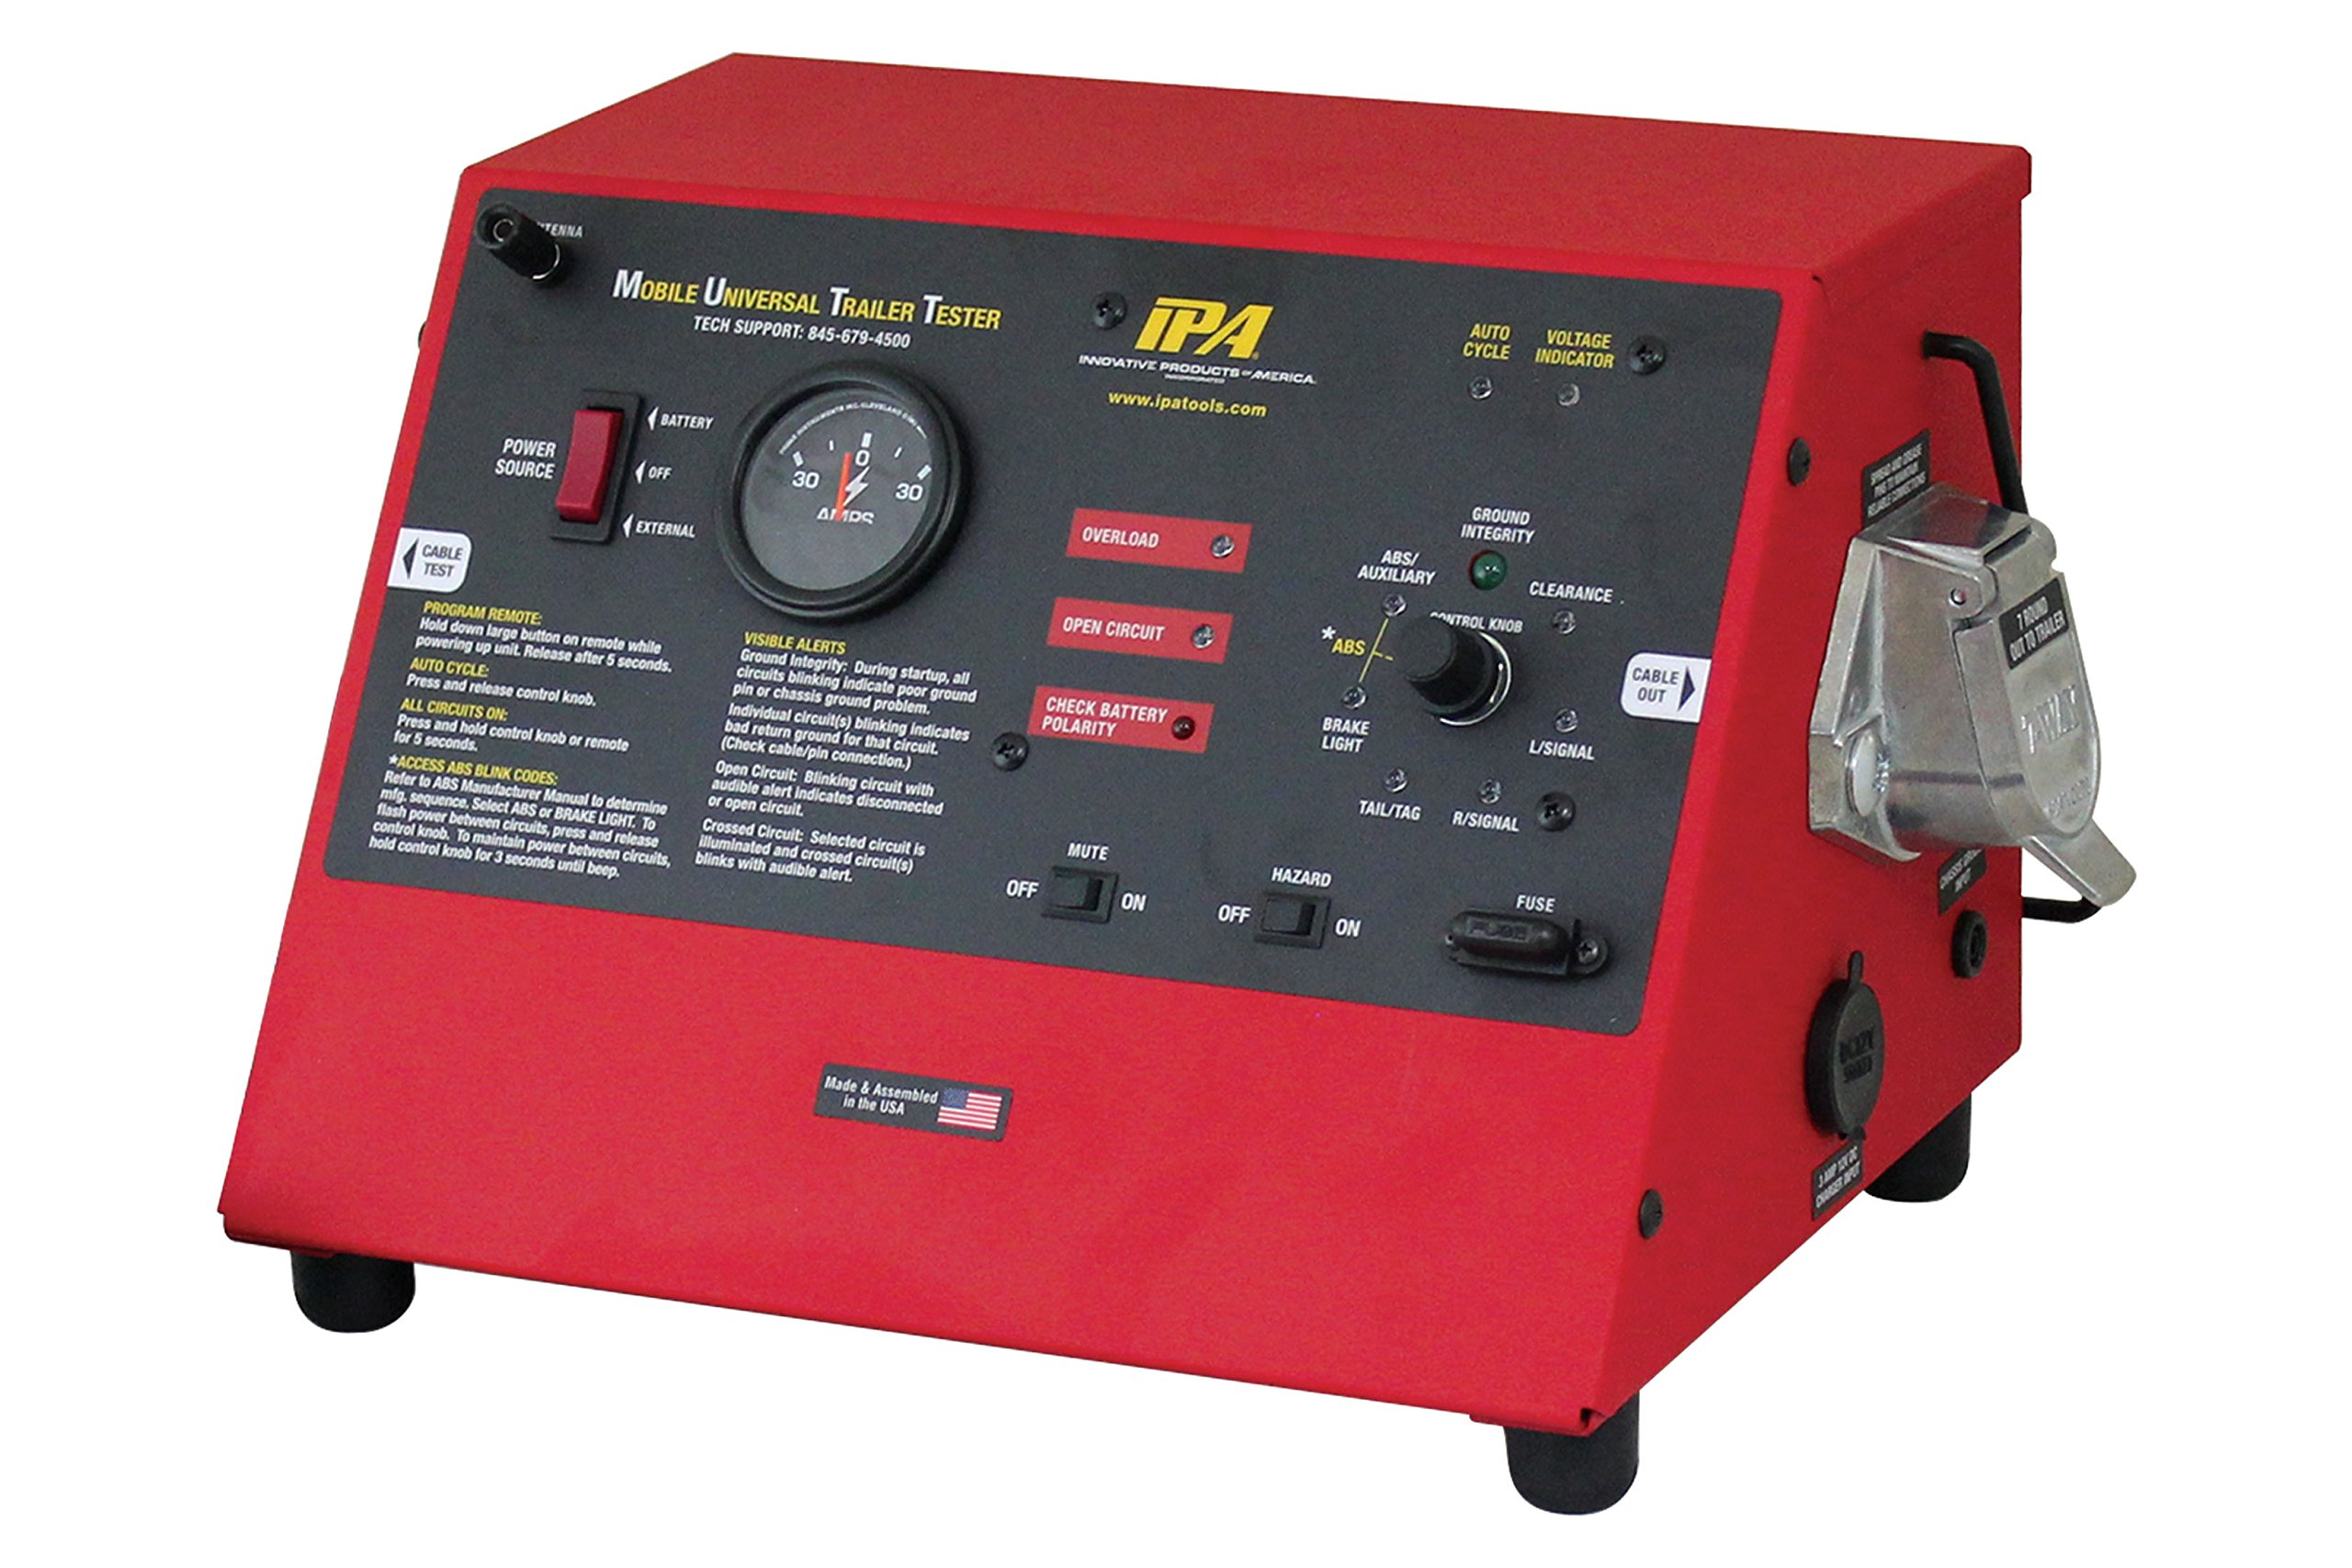 Innovative Products Of America IPA 9007A Smart MUTT Trailer Tester (7 Round Pin Style) by Innovative Products Of America (Image #2)